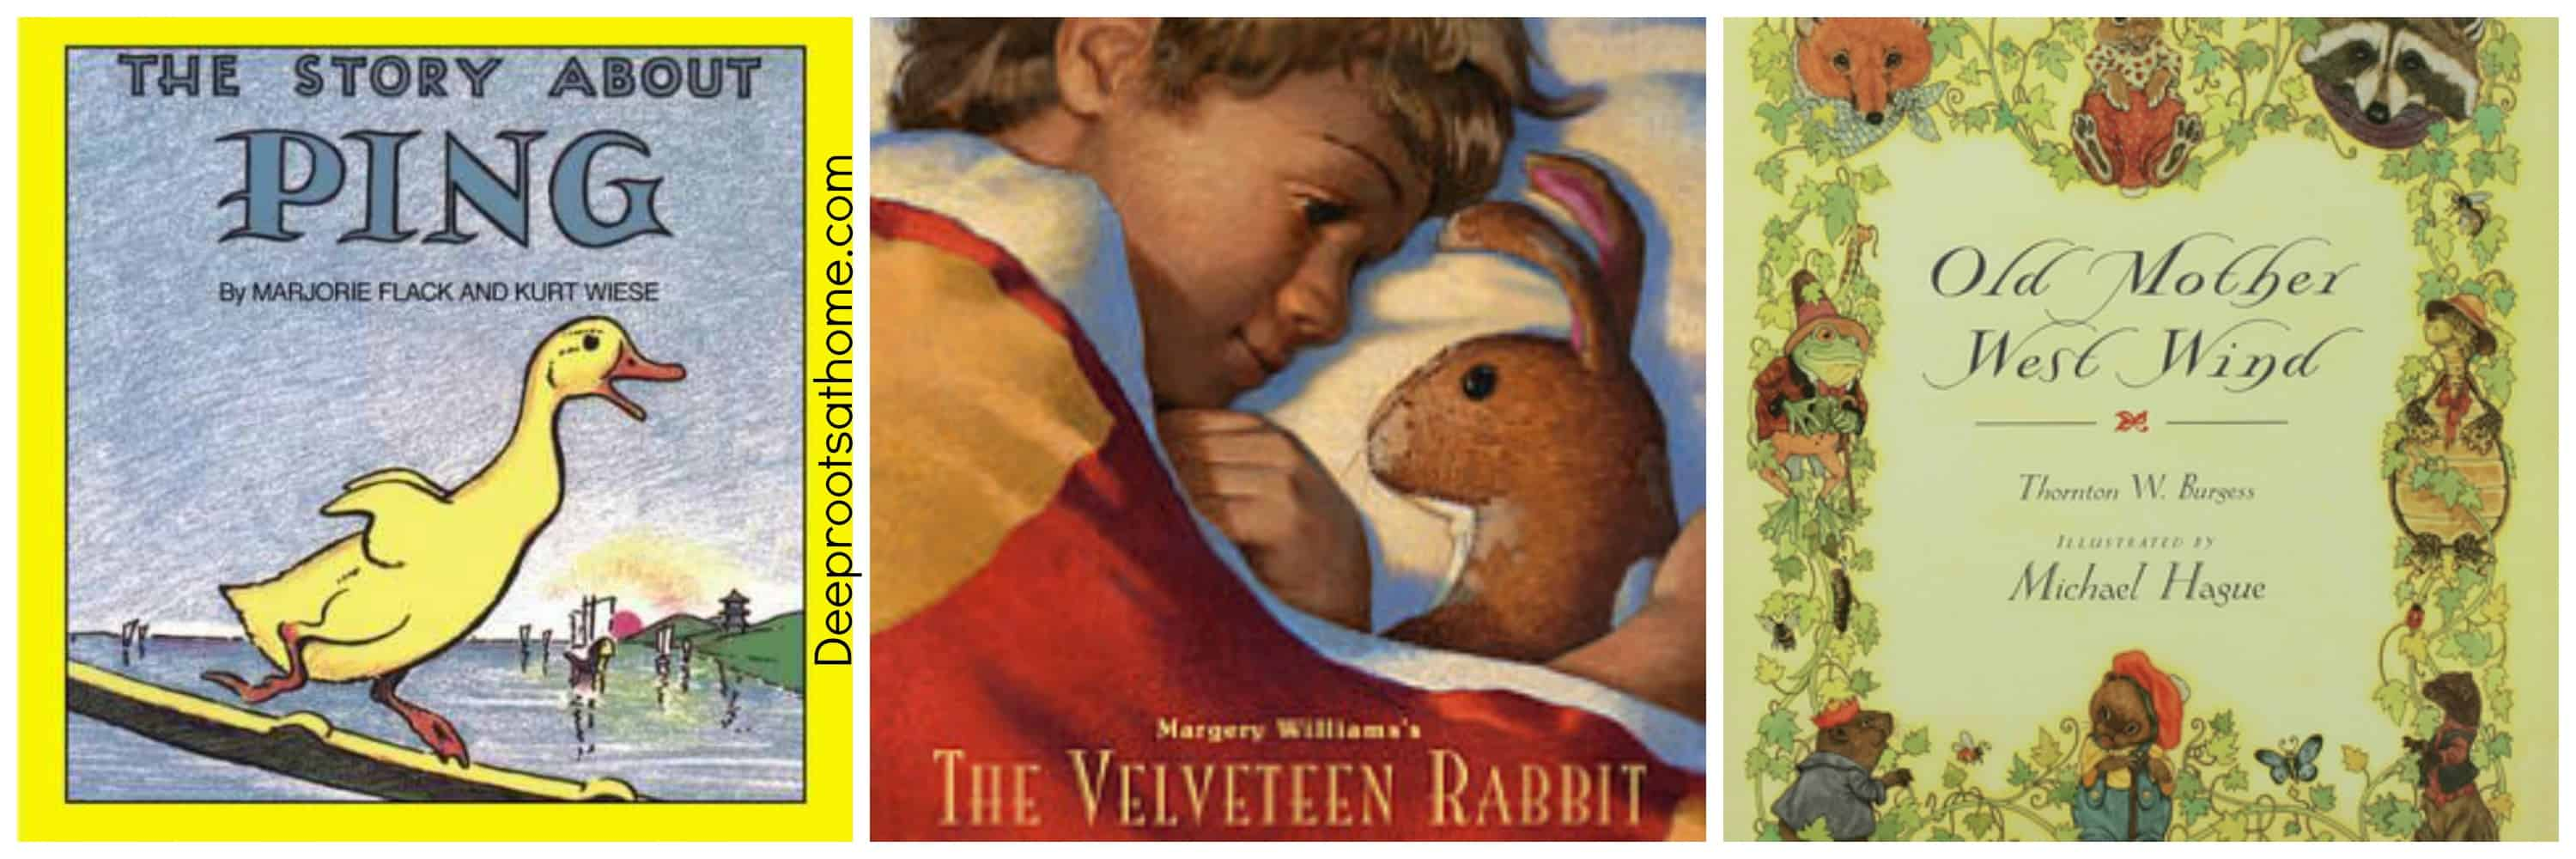 25 Beloved, Time-Tested Read Alouds For Young Children. 3 books: The Story About Ping, The Velveteen Rabbit, and Old Mother West Wind.